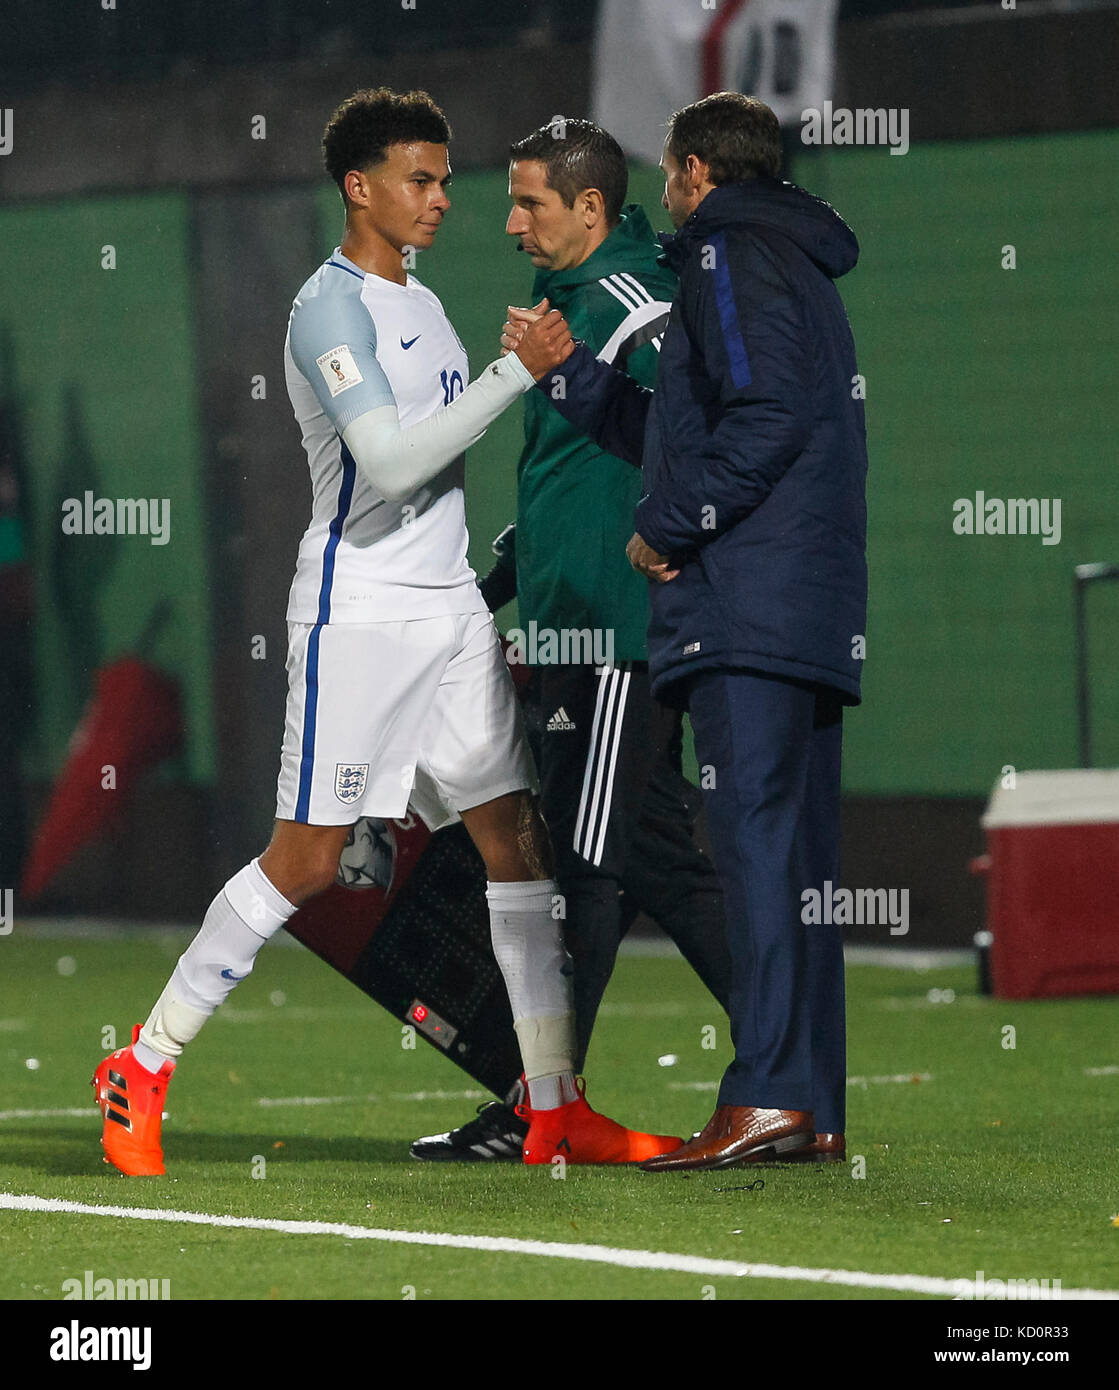 Vilnius, Lithuania. 8th Oct, 2017.  Dele Alli of England and England Manager Gareth Southgate during the FIFA World - Stock Image